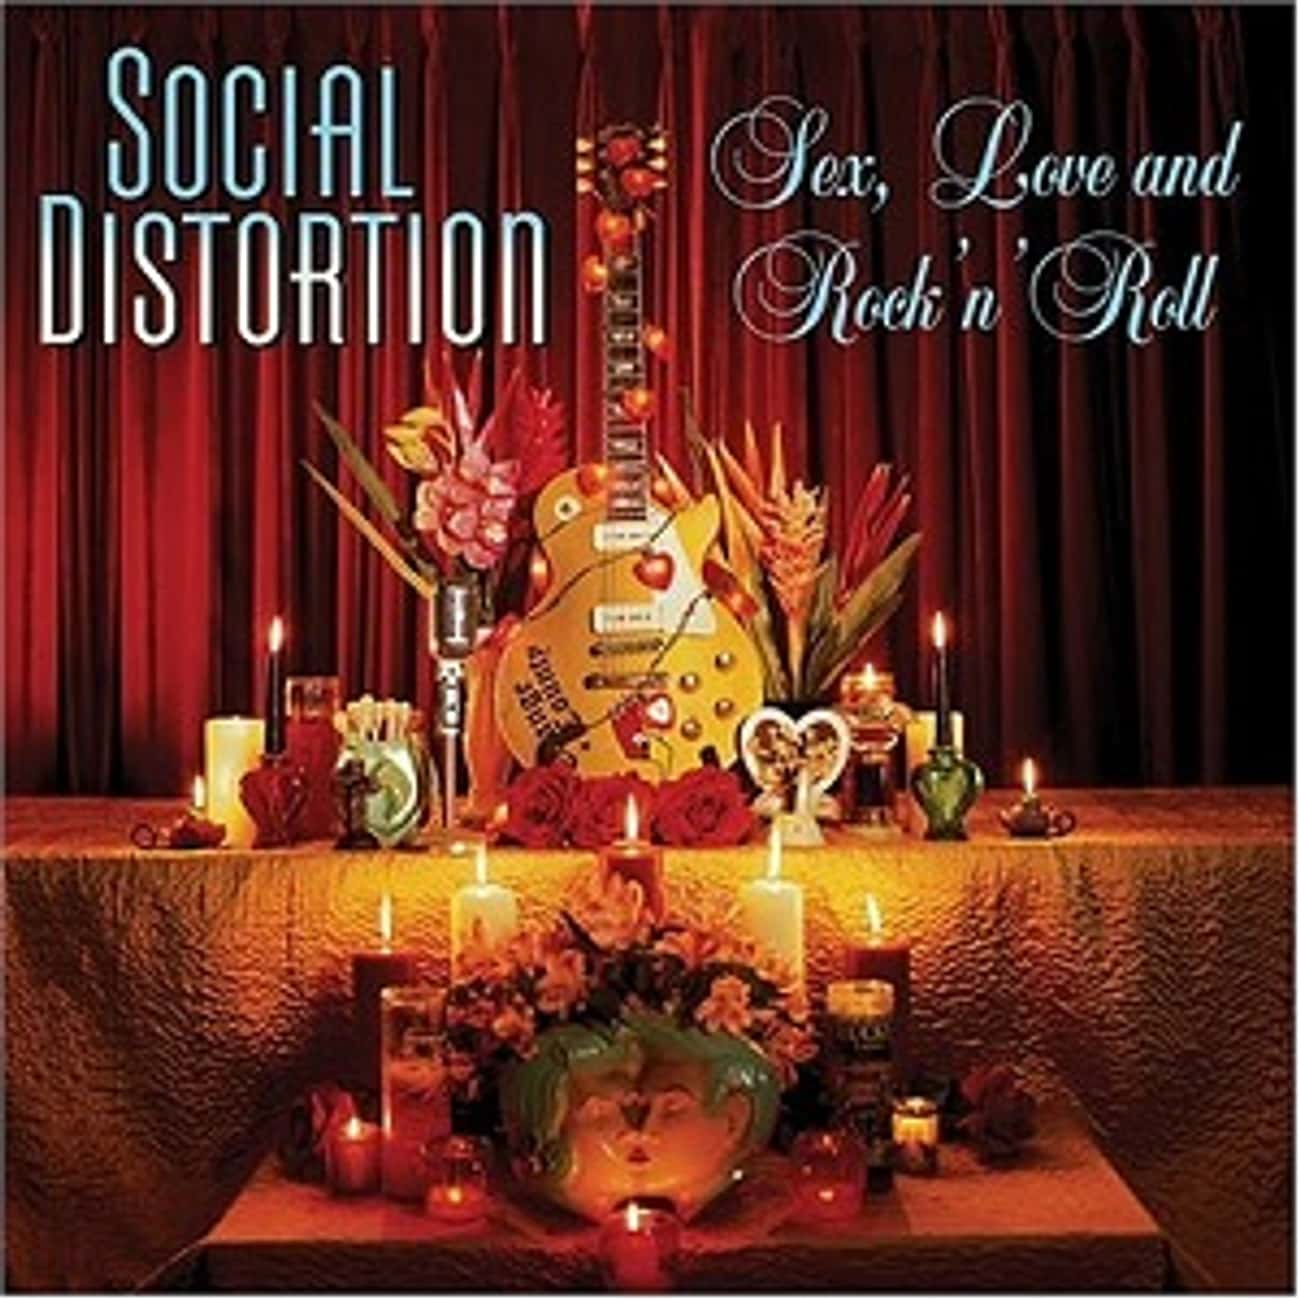 Sex, Love and Rock 'n' Roll is listed (or ranked) 4 on the list The Best Social Distortion Albums of All Time